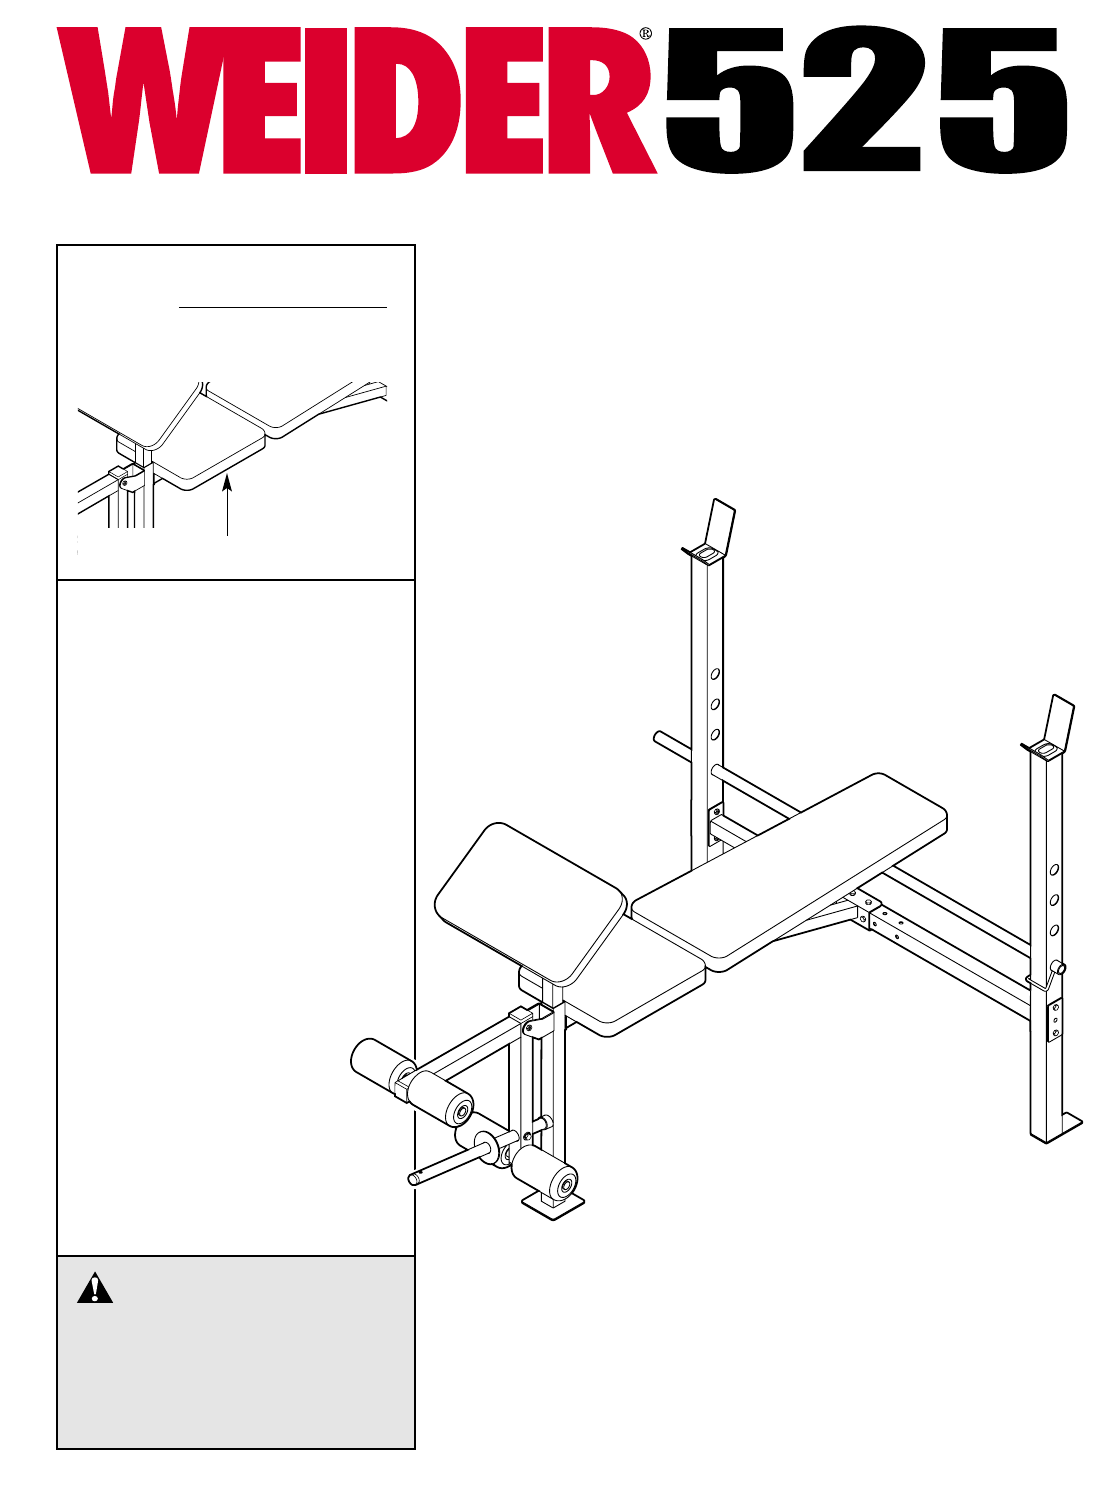 Weight Machine Replacement Parts : Weider weight bench images pin pro